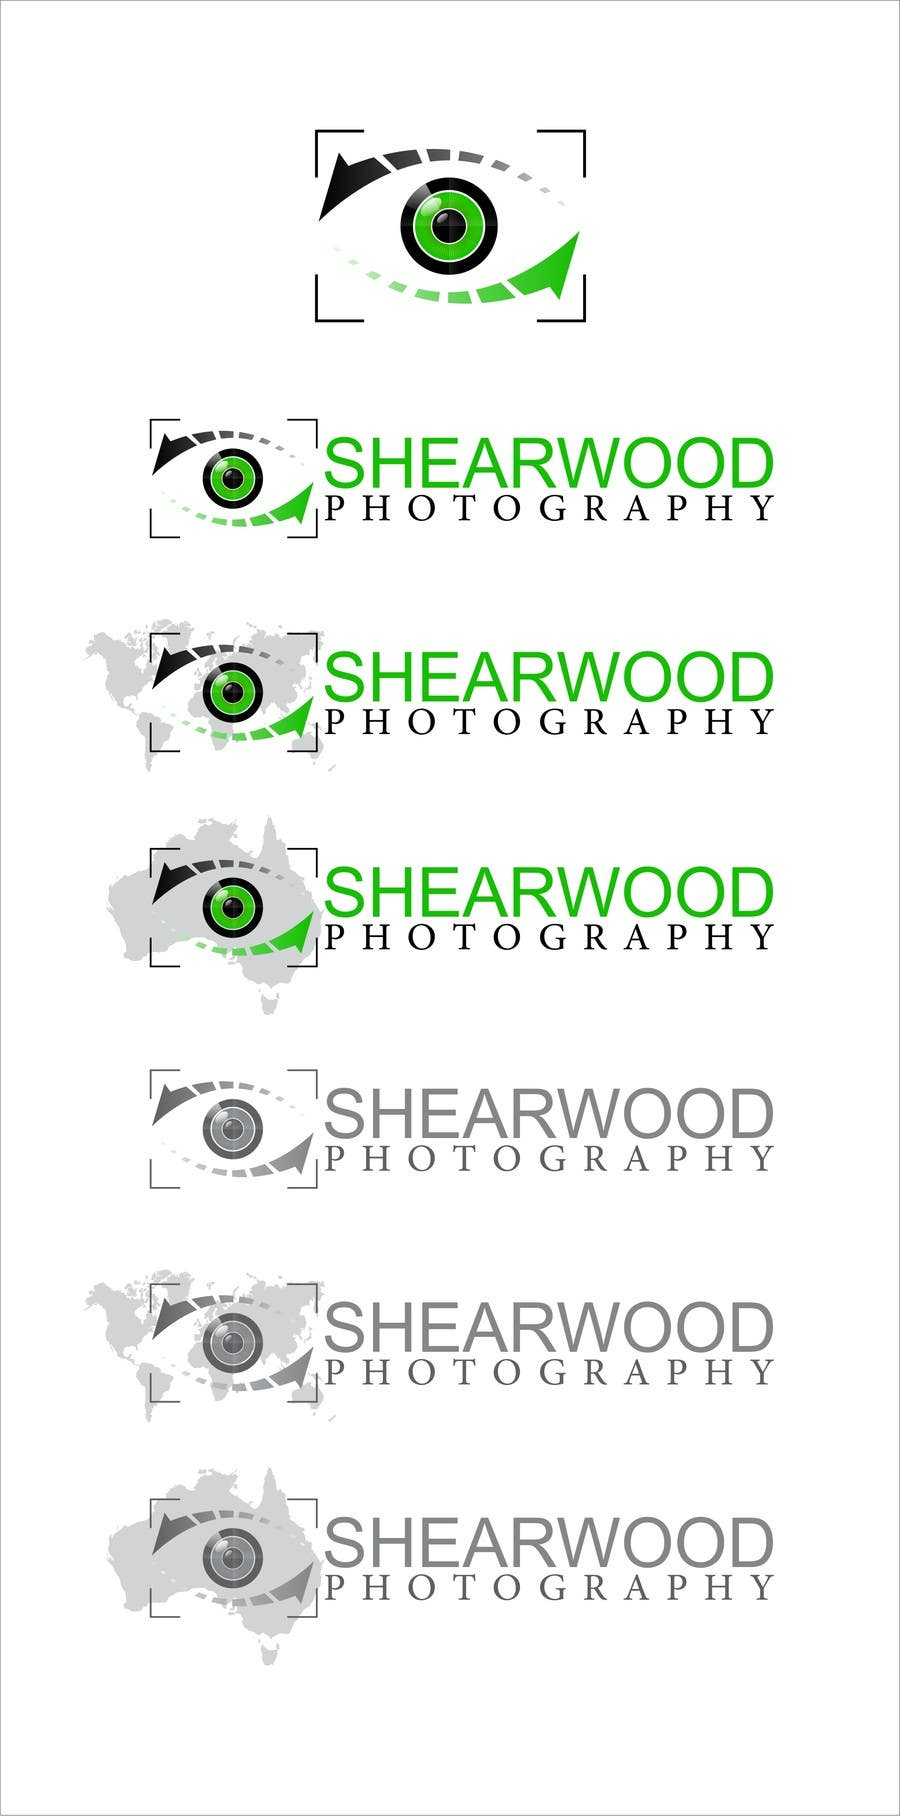 #159 for Design a Logo for Shearwood Photography by airbrusheskid